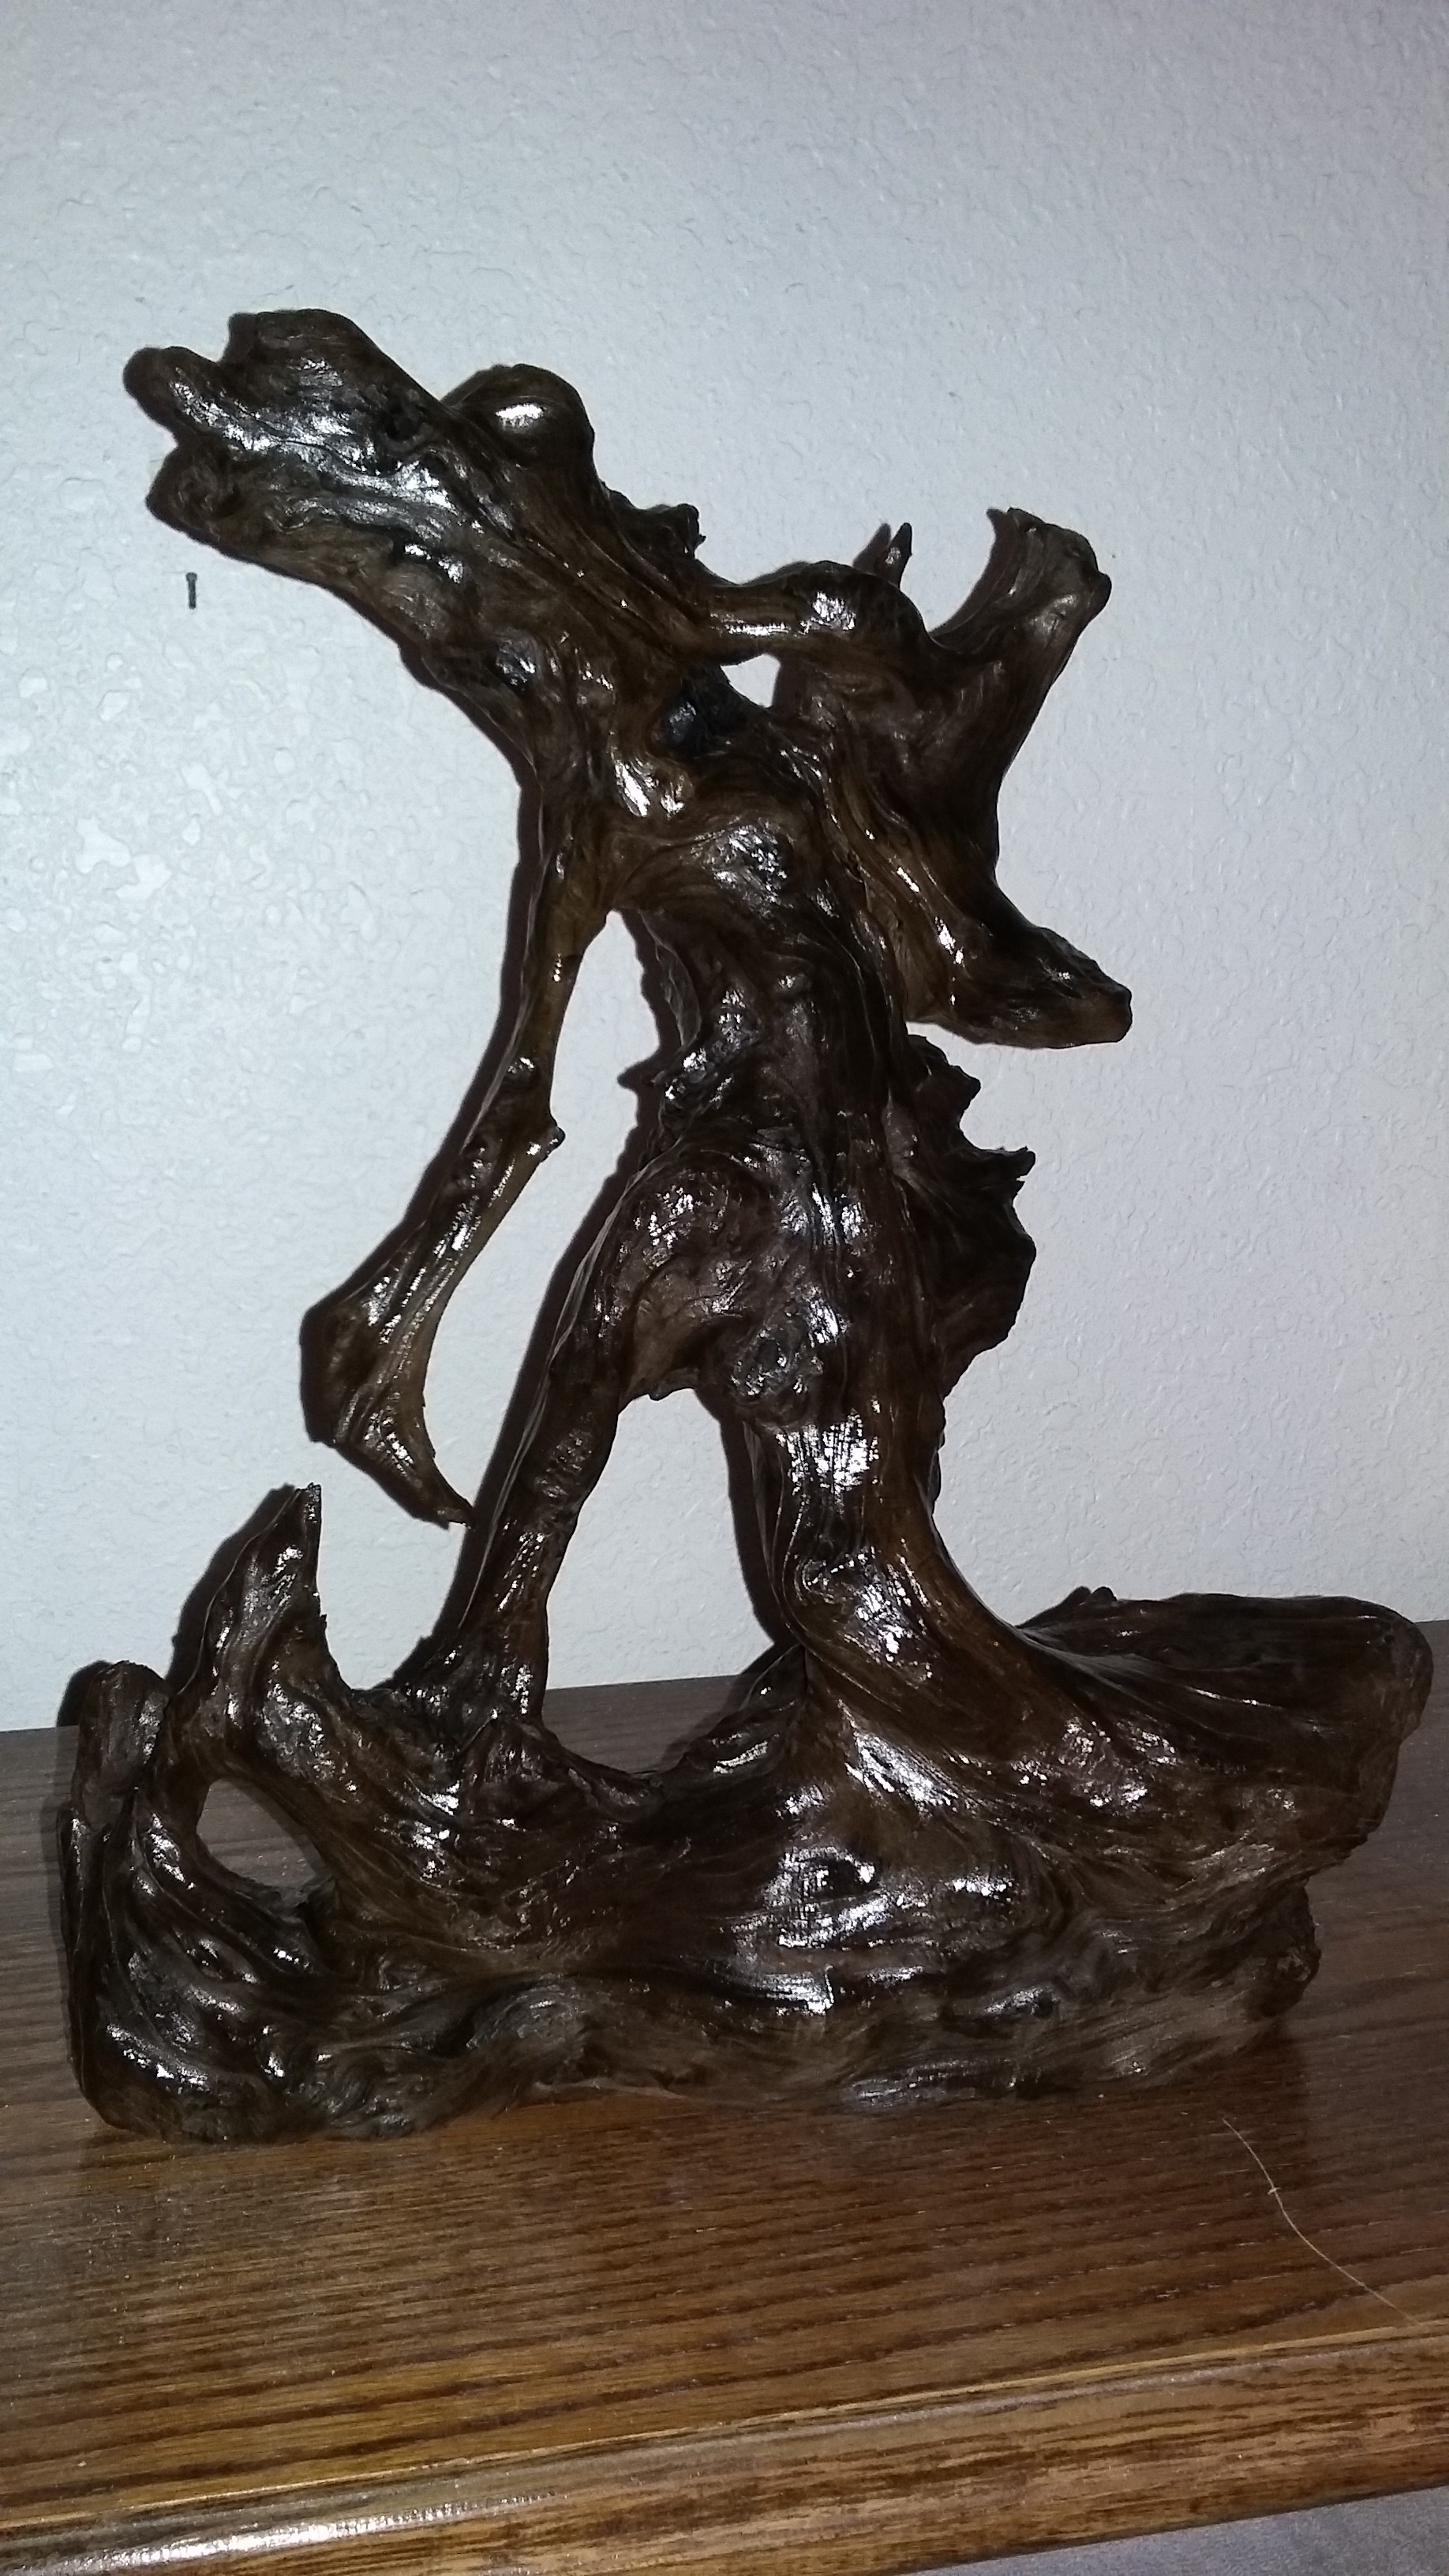 drift wood statue 004 - Copy